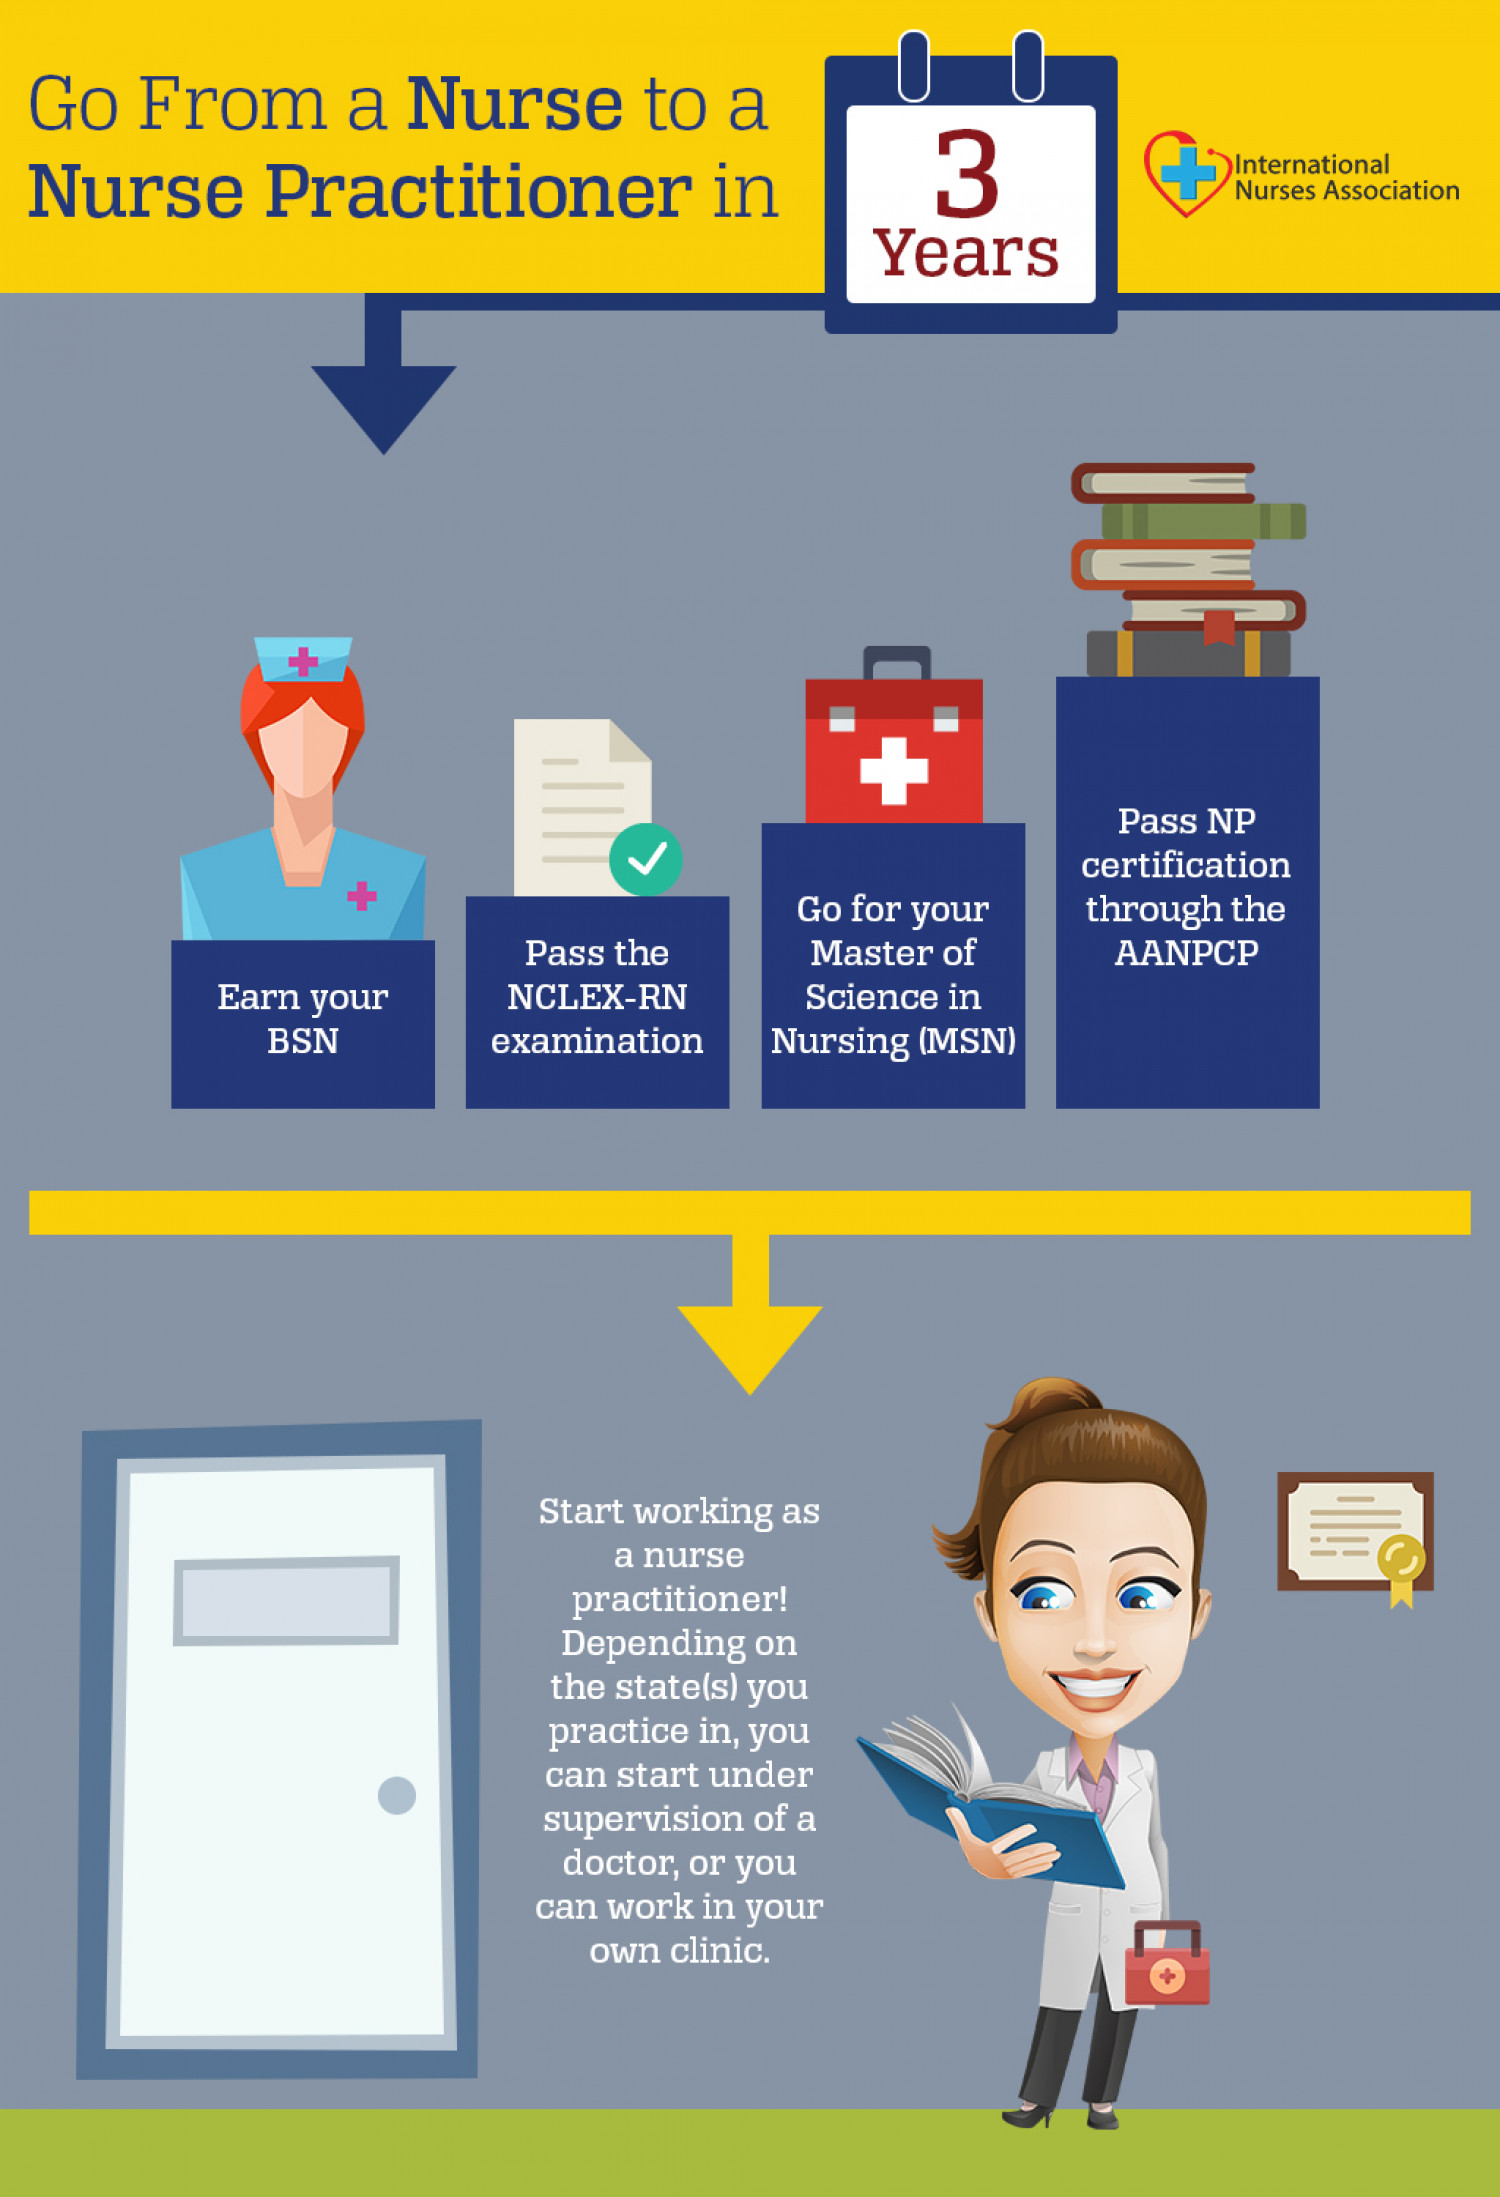 Infographic : Go From a Nurse to a Nurse Practitioner in 3 Years Infographic